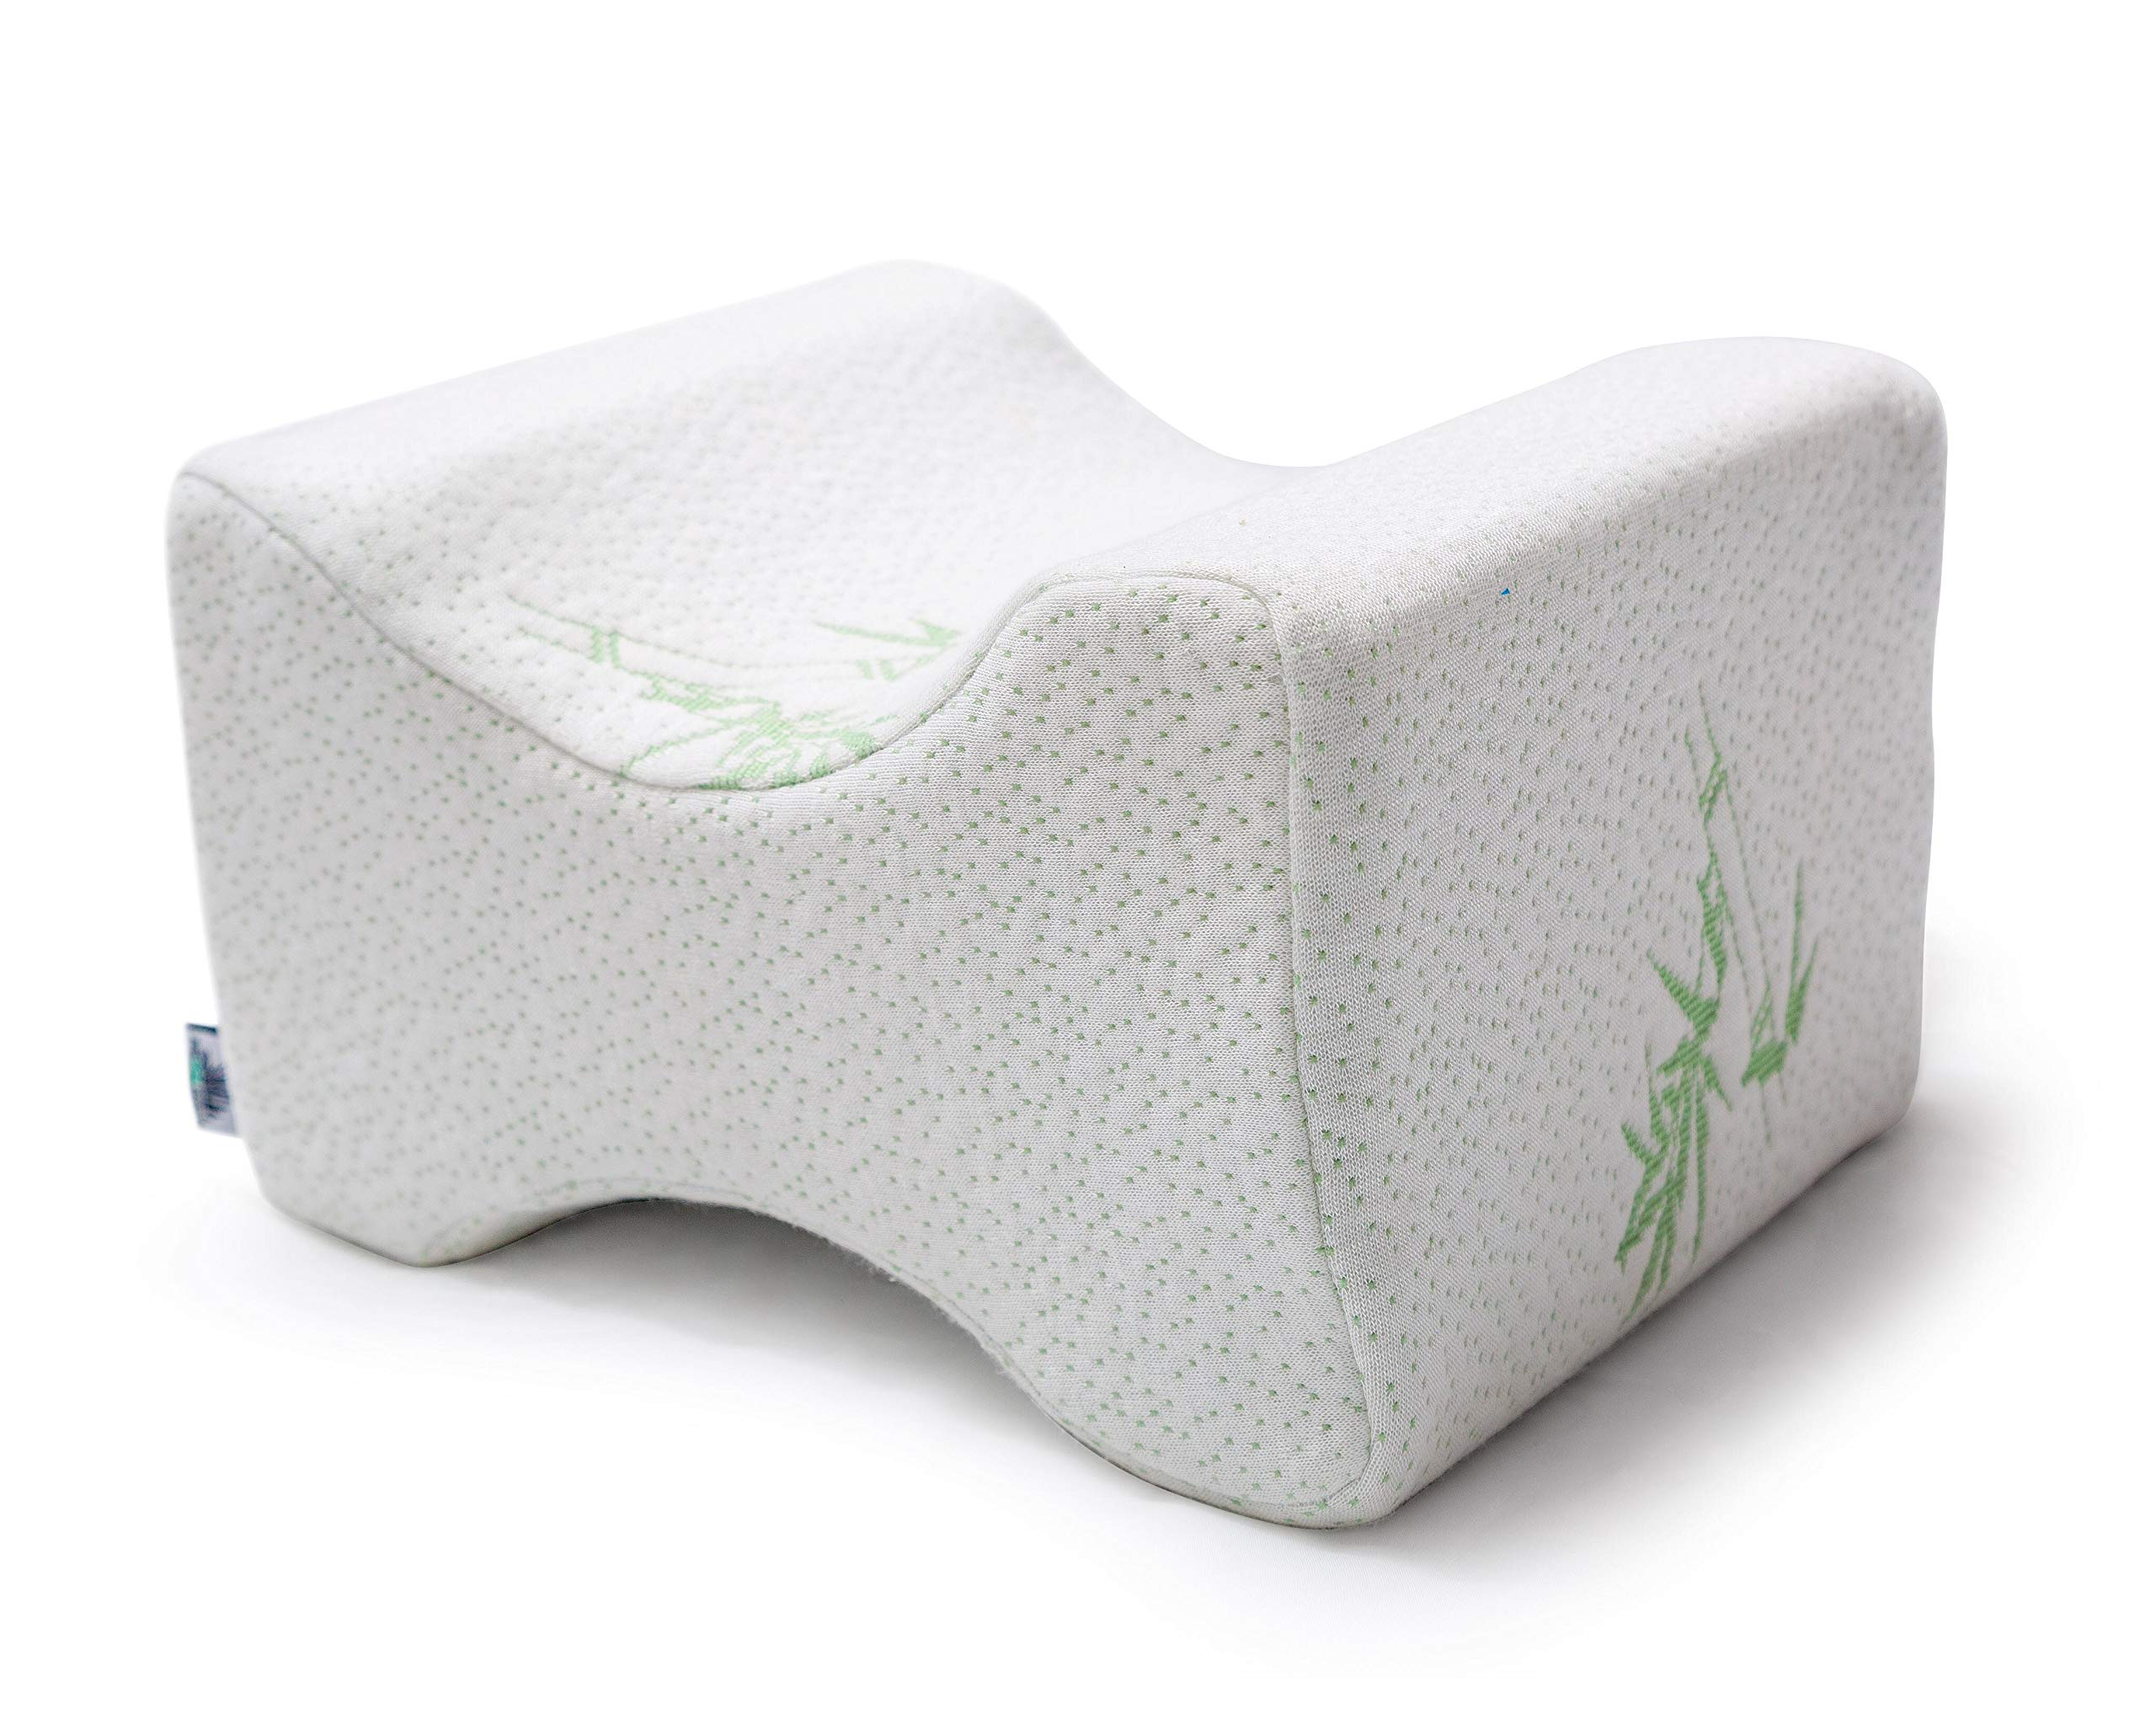 Bamboo Sleep Knee Pillow by Pura Verde Products - Memory Foam Contour Cushion +Travel Bag - Contour Knee Pillow for Side Sleepers, Pregnancy - Orthopedic Wedge Pillow for Back, Leg, Hip & Sciatic Pain